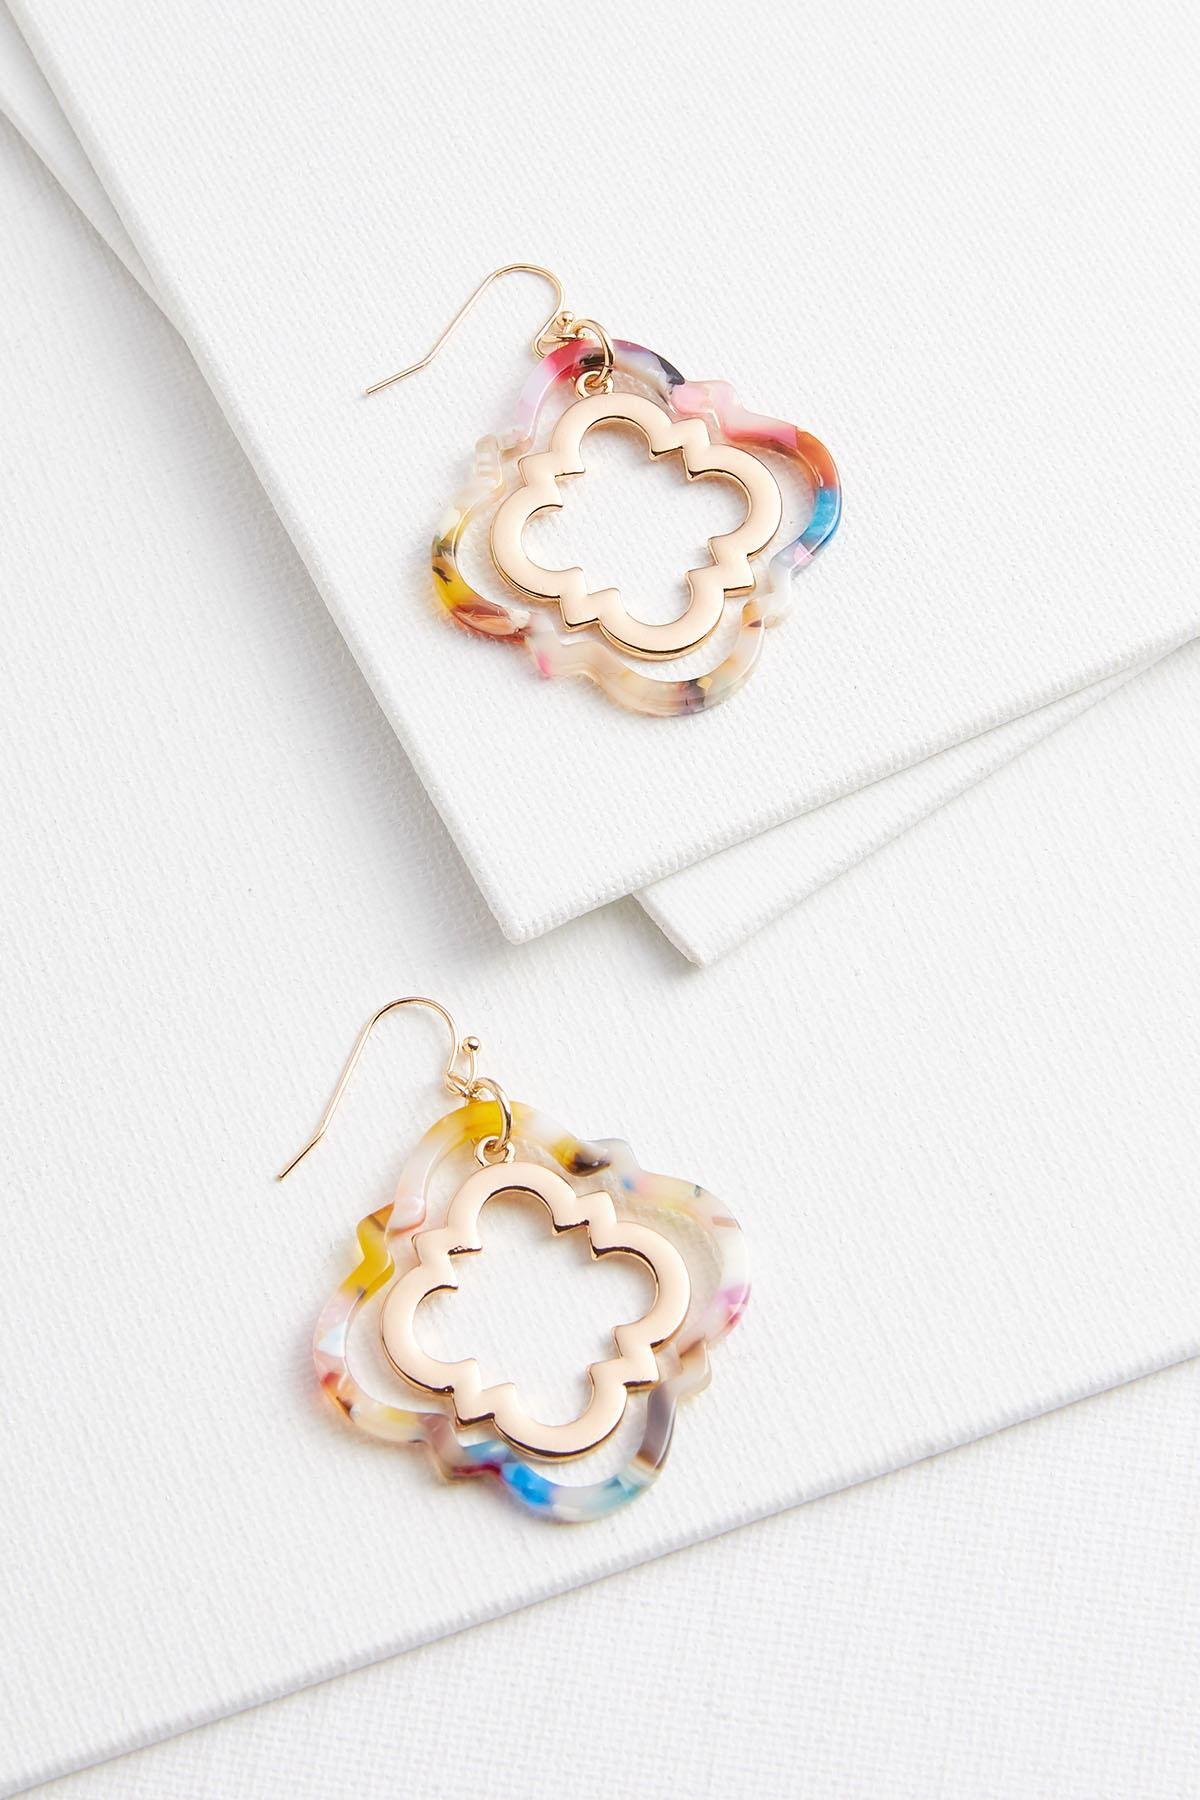 Mixed Emotions Medallion Earrings